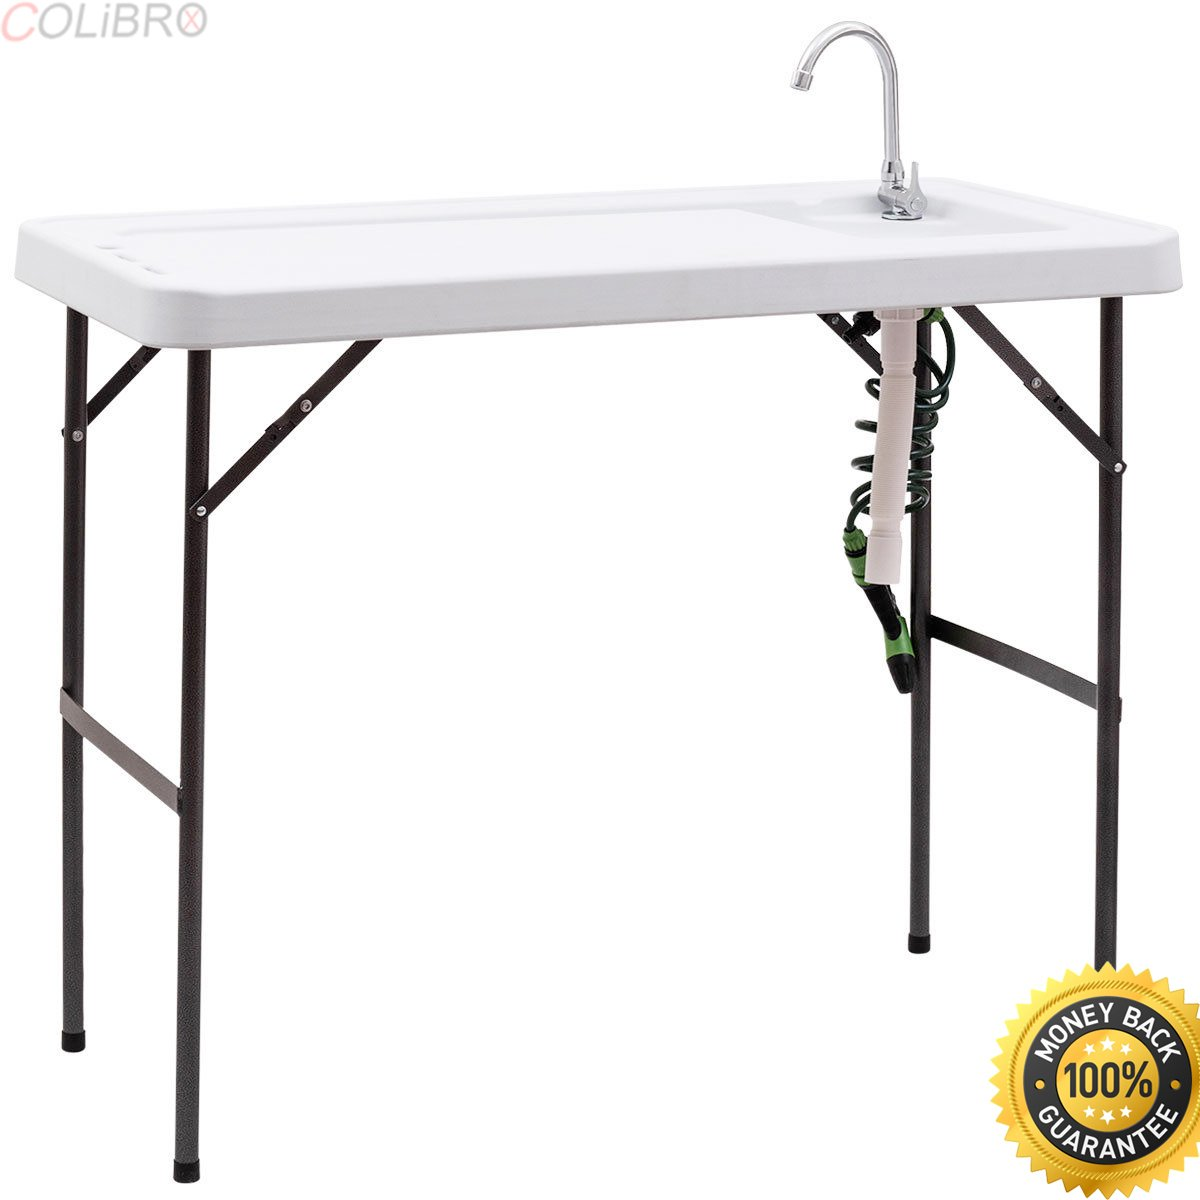 COLIBROX--Folding Fish Table Hunting Cleaning Cutting Camping Sink Faucet w Sprayer New. goplus folding portable fish hunting cleaning cutting table camping sink faucet. best fish cleaning table.